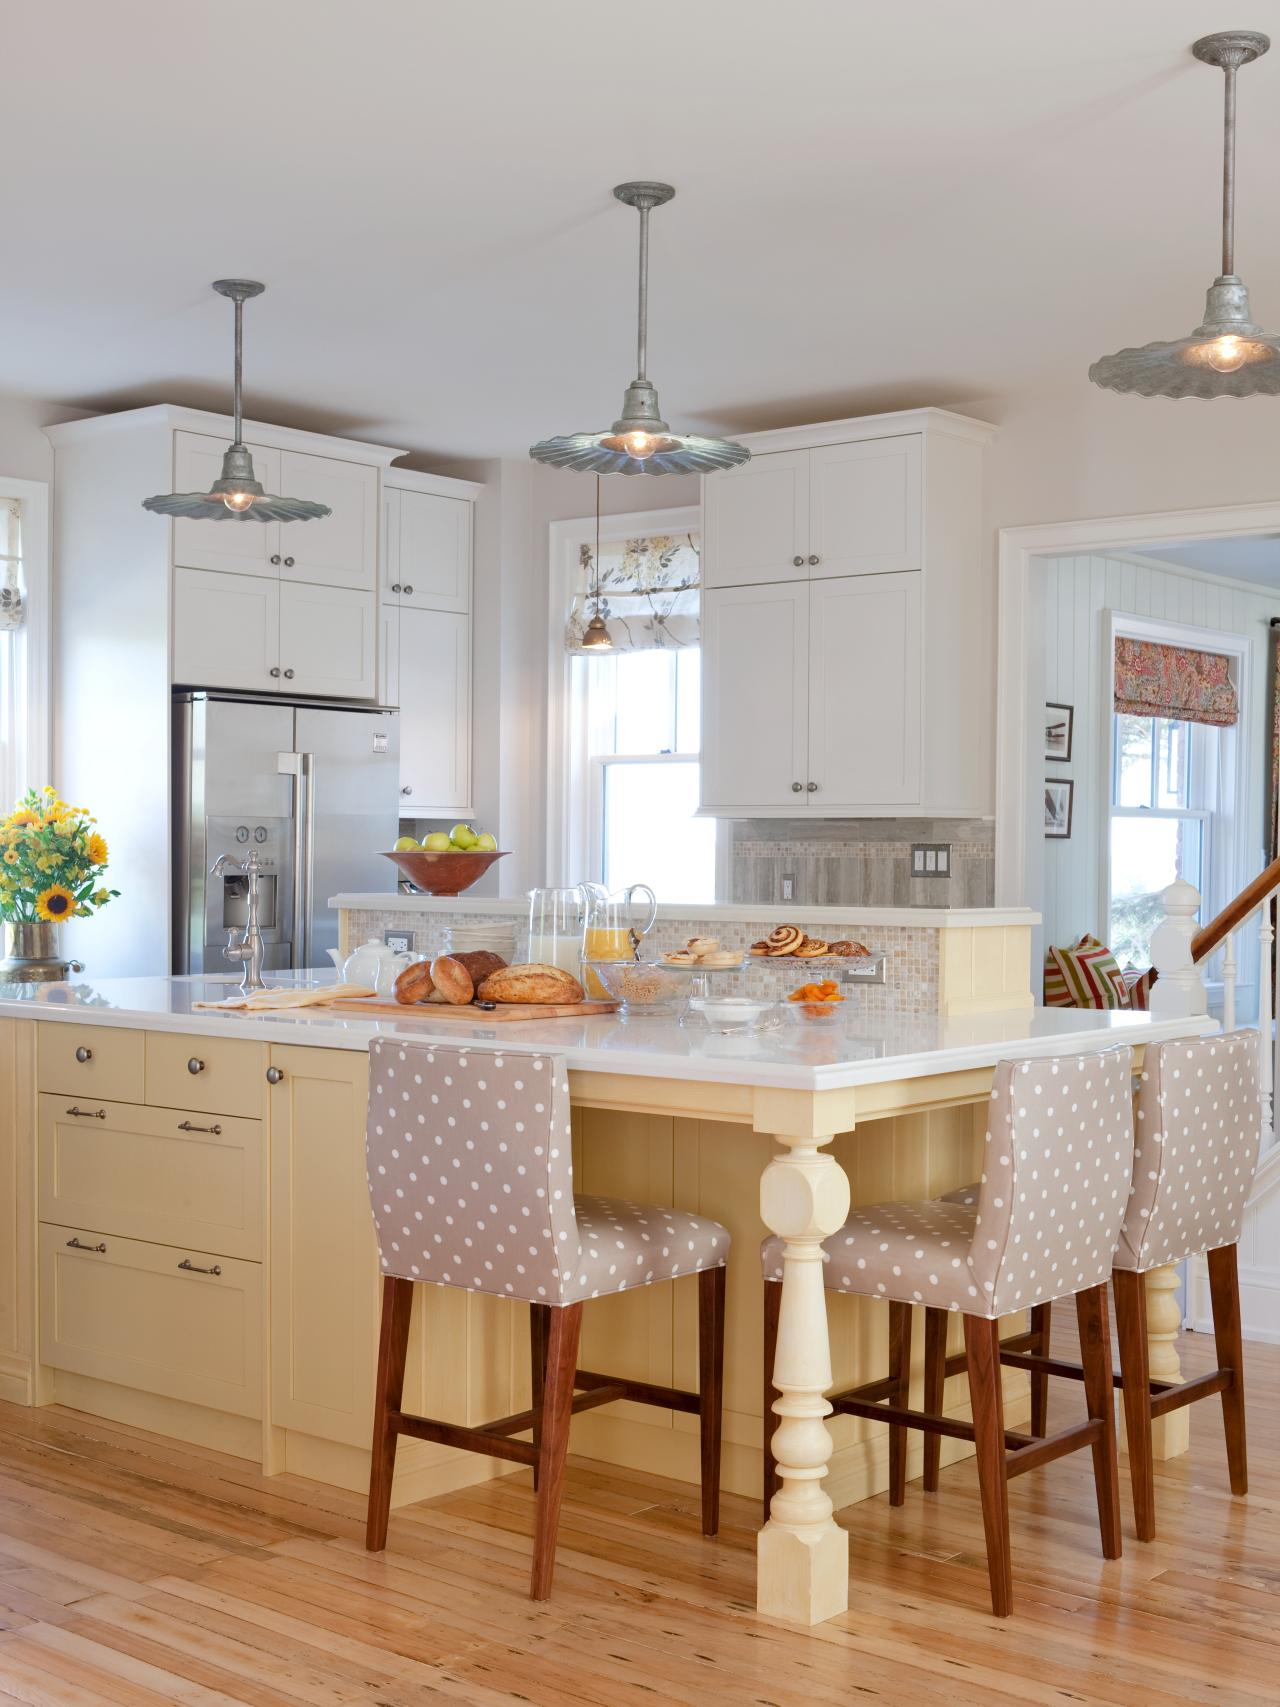 Rustic Kitchen Islands Ideas & Tips From HGTV